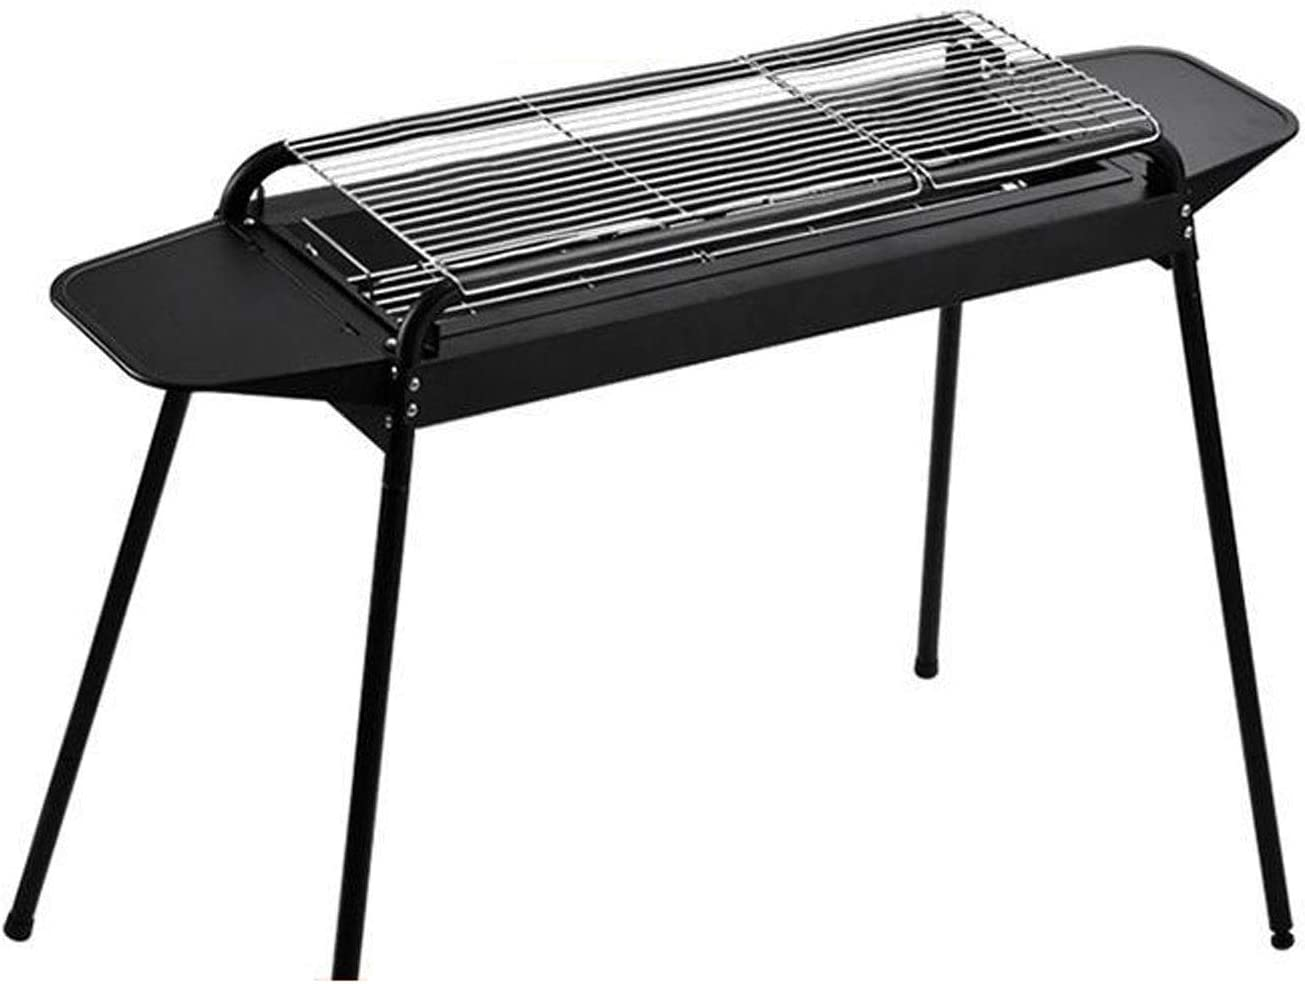 New arrival XBSJB Charcoal BBQ Max 40% OFF Tabletop Outdoor C Smoker Stainless Steel